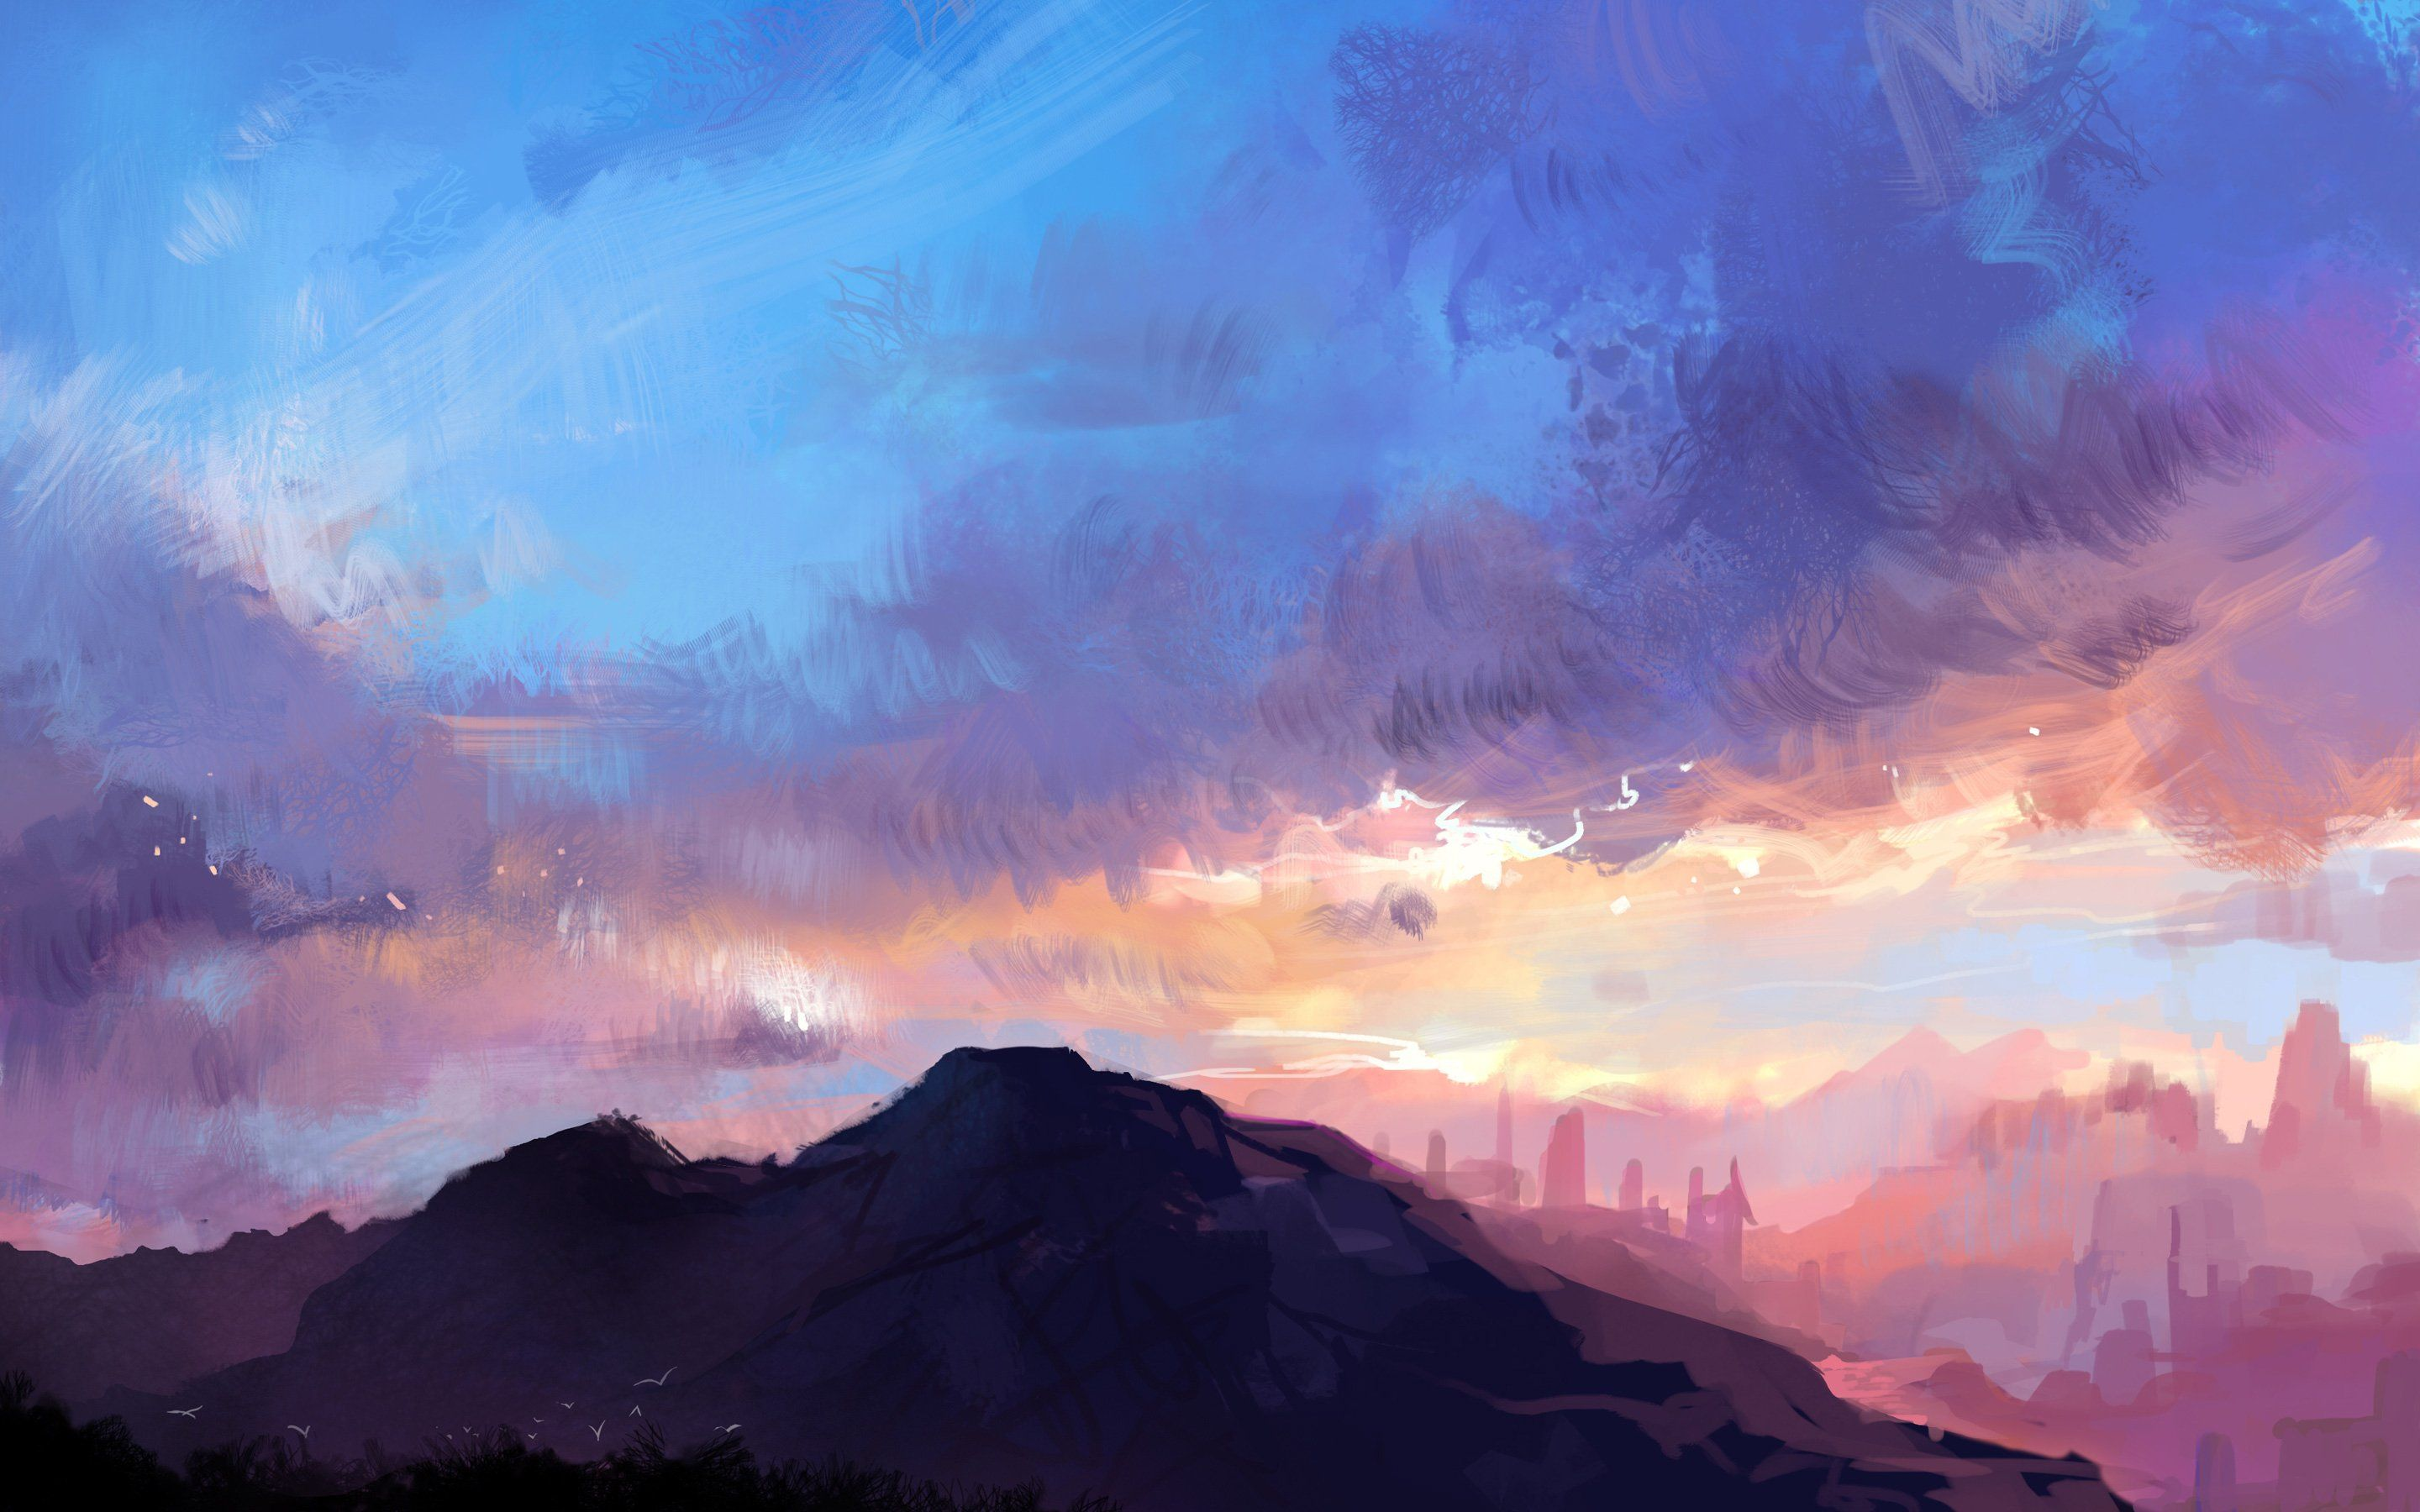 Anime Scenery Wallpapers - Top Free Anime Scenery ...